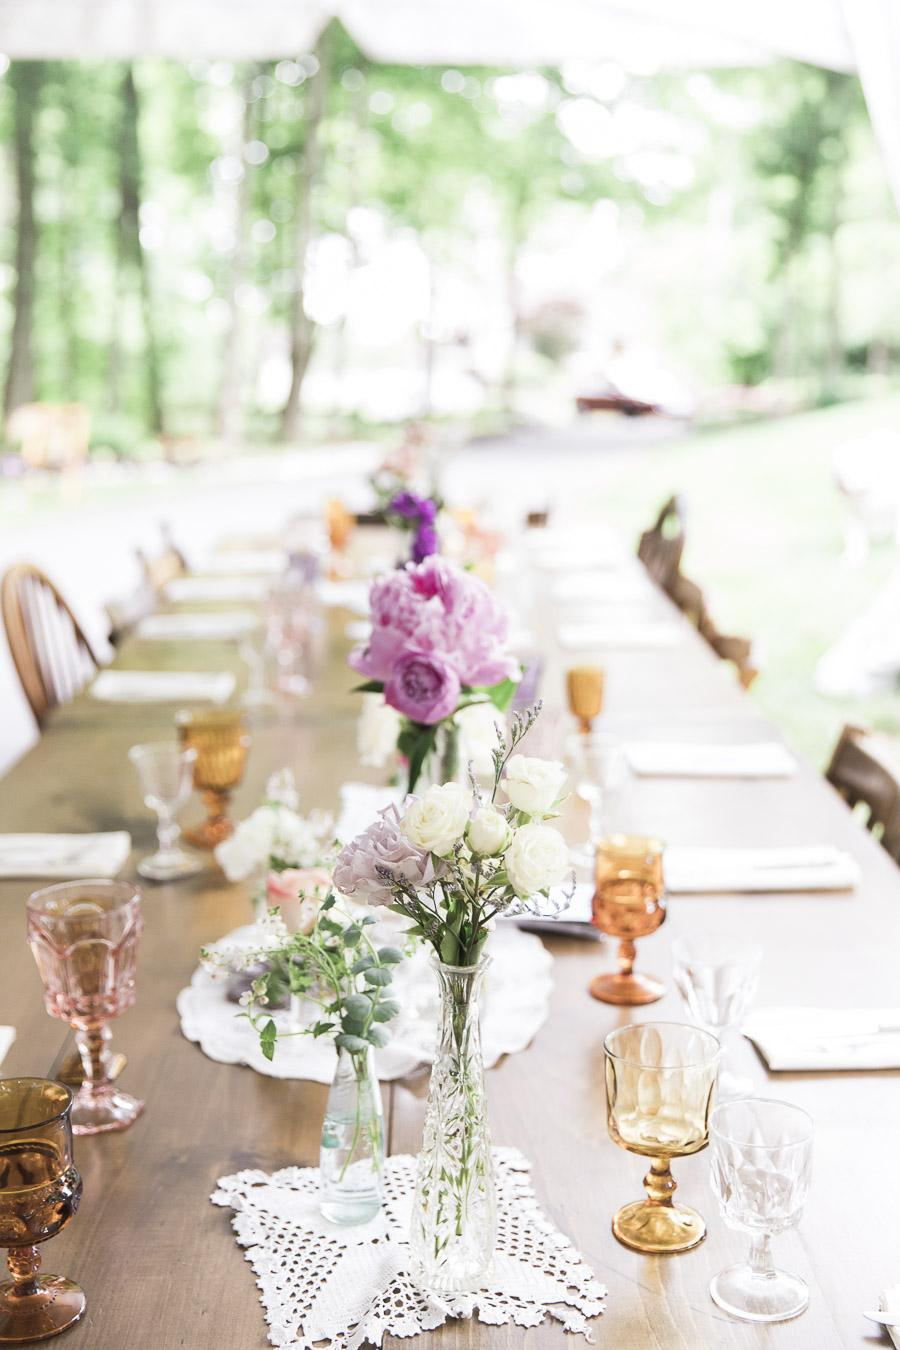 Bohemian Backyard BBQ Wedding in Washington Crossing Nicole Dumond Photography Philly In Love Philadelphia Weddings Philadelphia Wedding Vendors